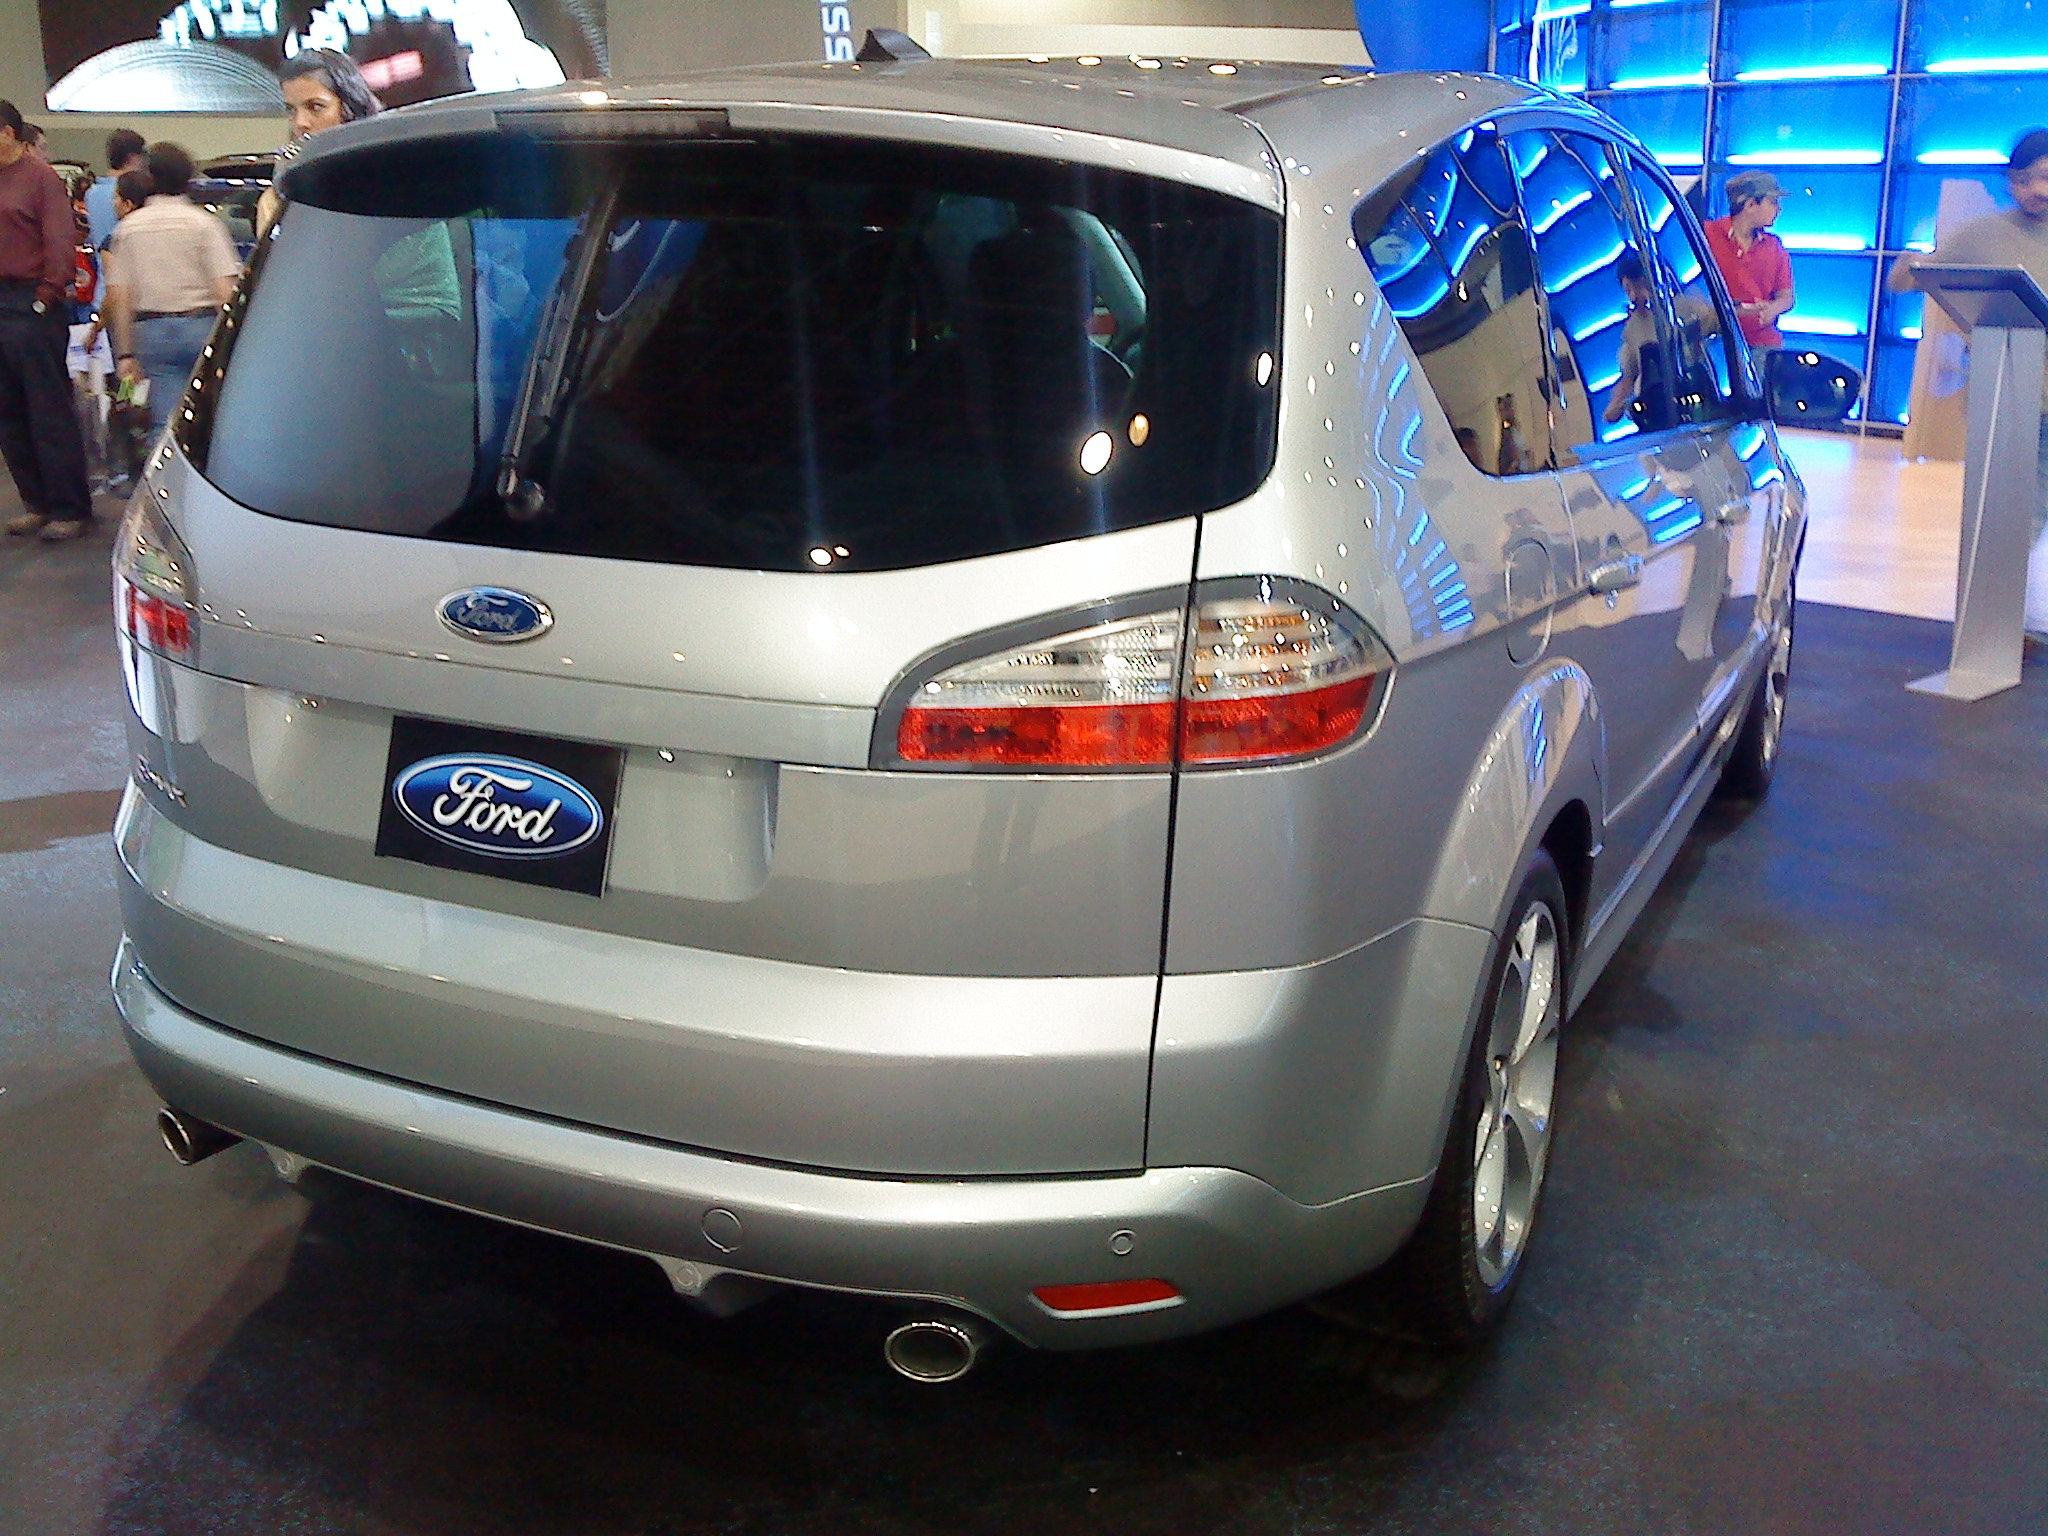 file ford s max siam 2008 2 jpg wikimedia commons. Black Bedroom Furniture Sets. Home Design Ideas